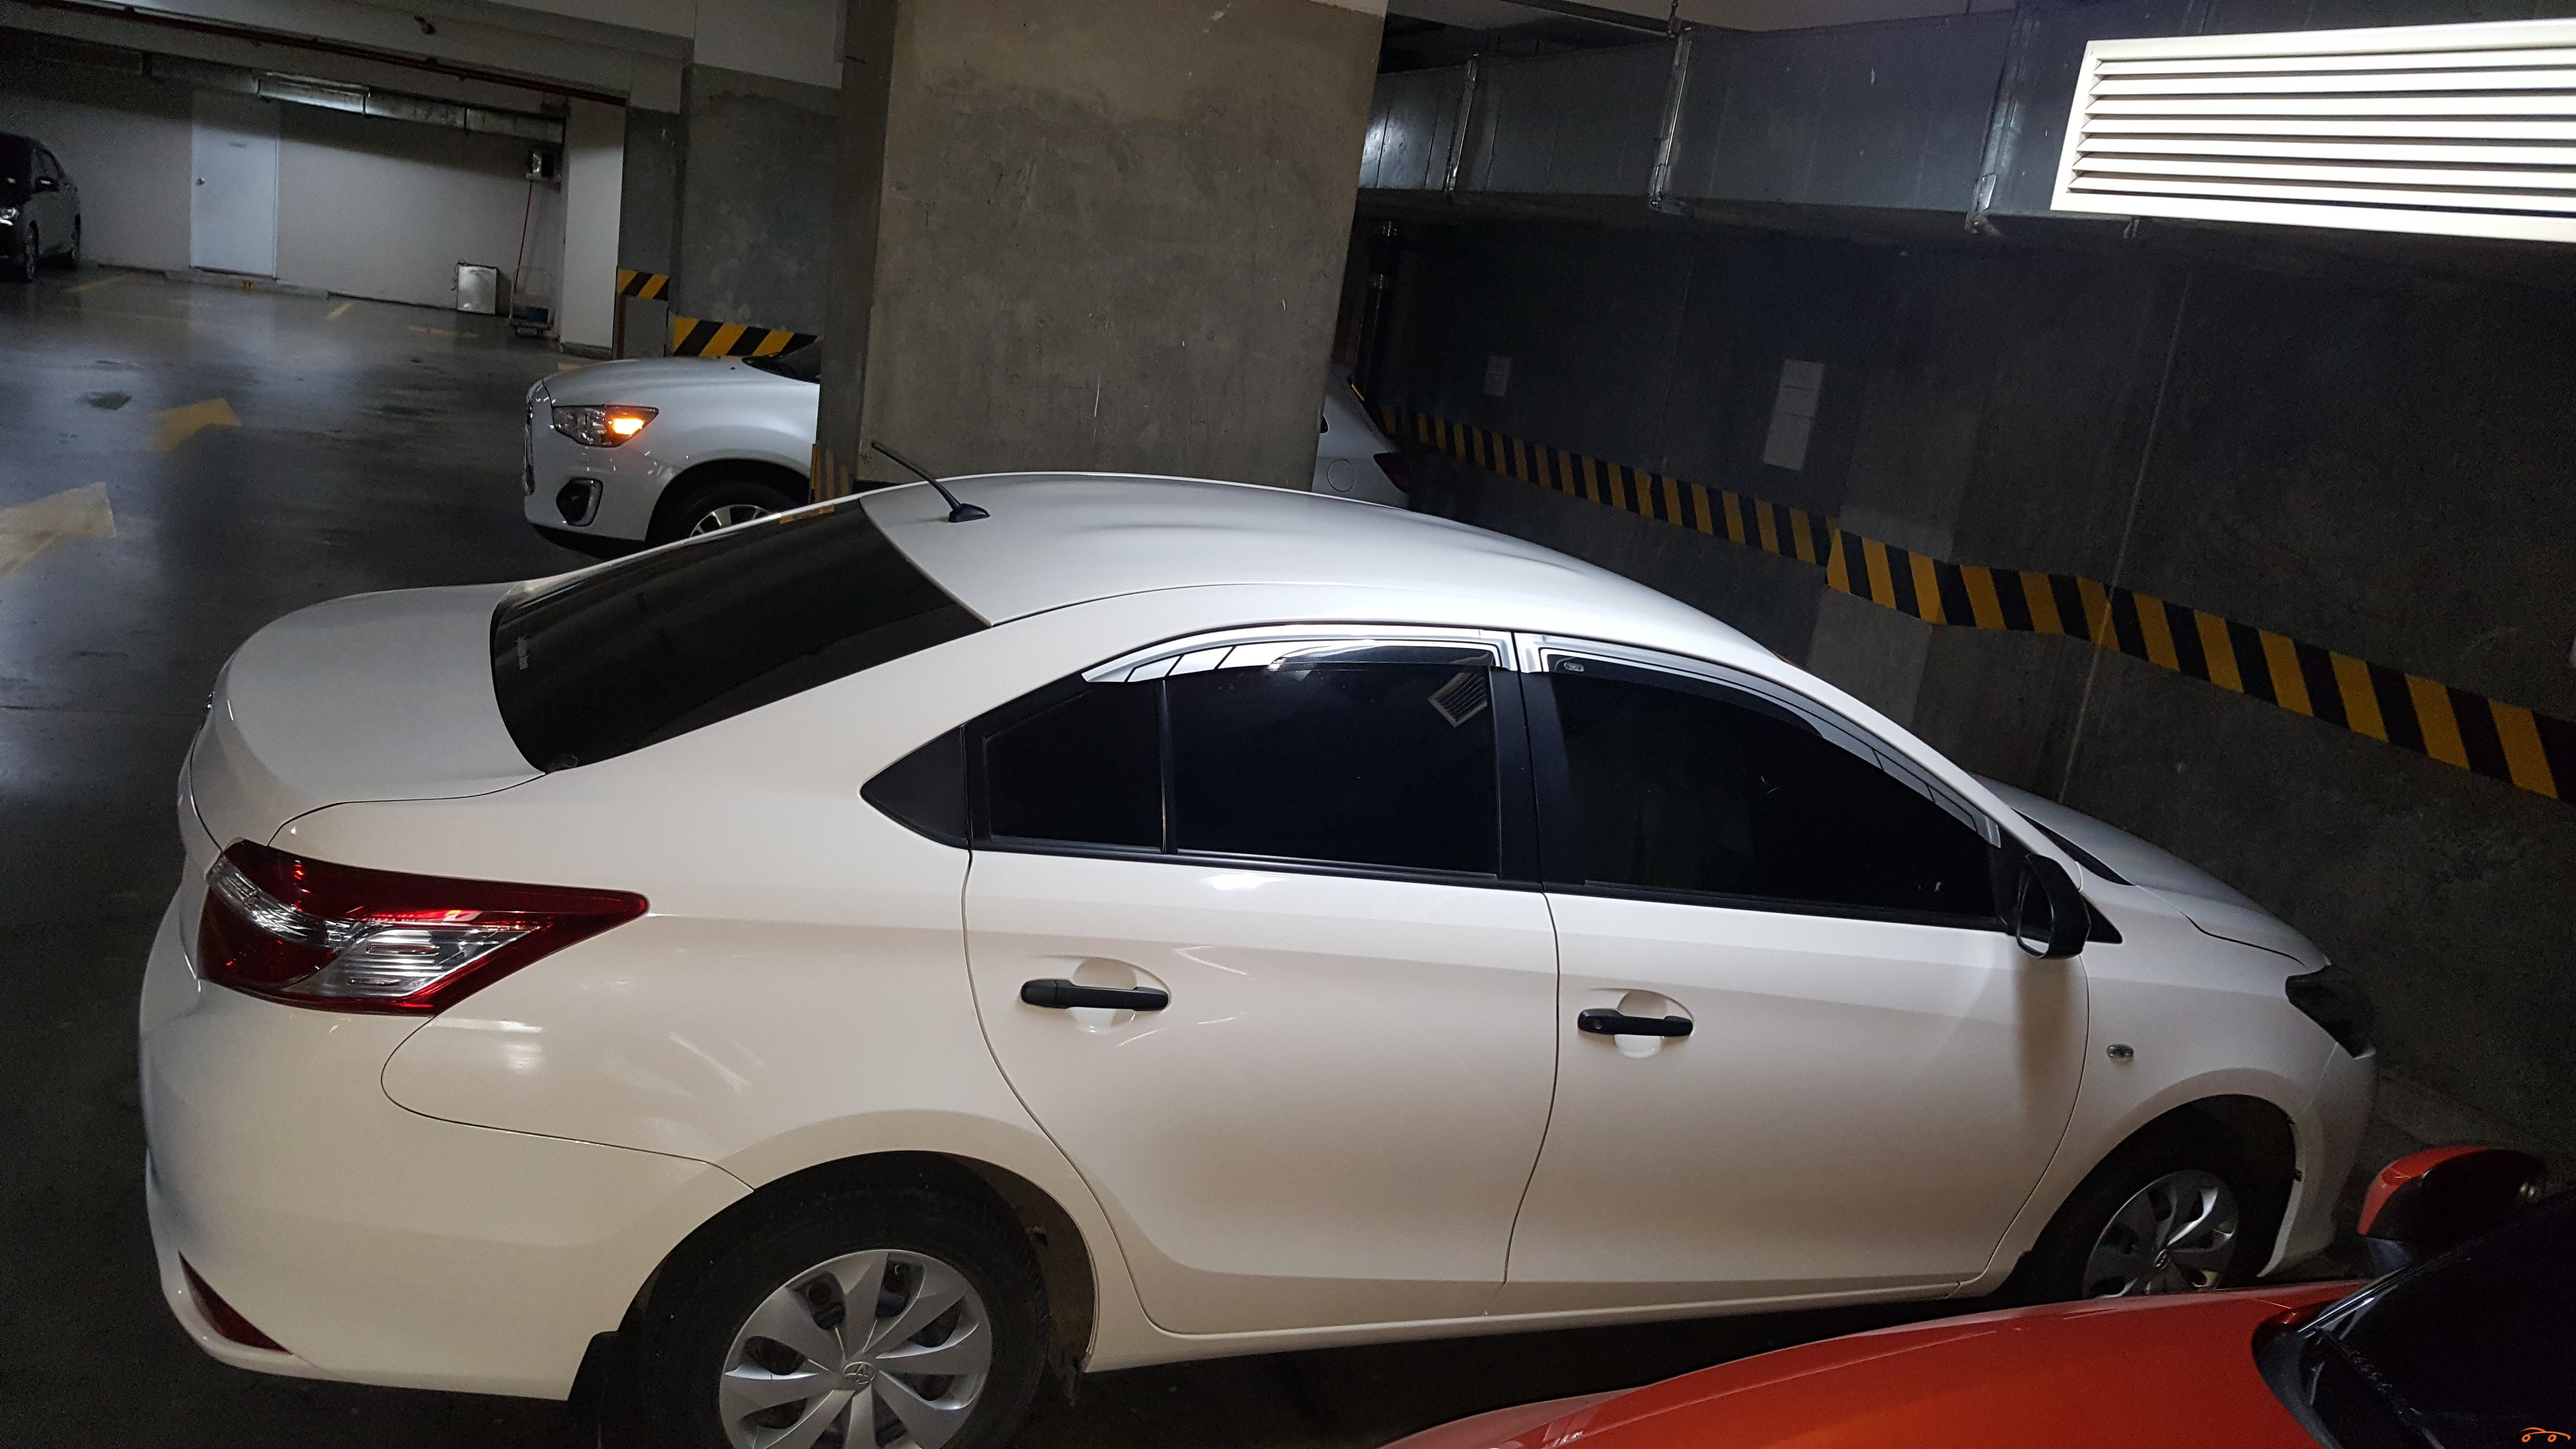 2014 Mazda 6 For Sale >> Toyota Vios 2014 - Car for Sale Calabarzon